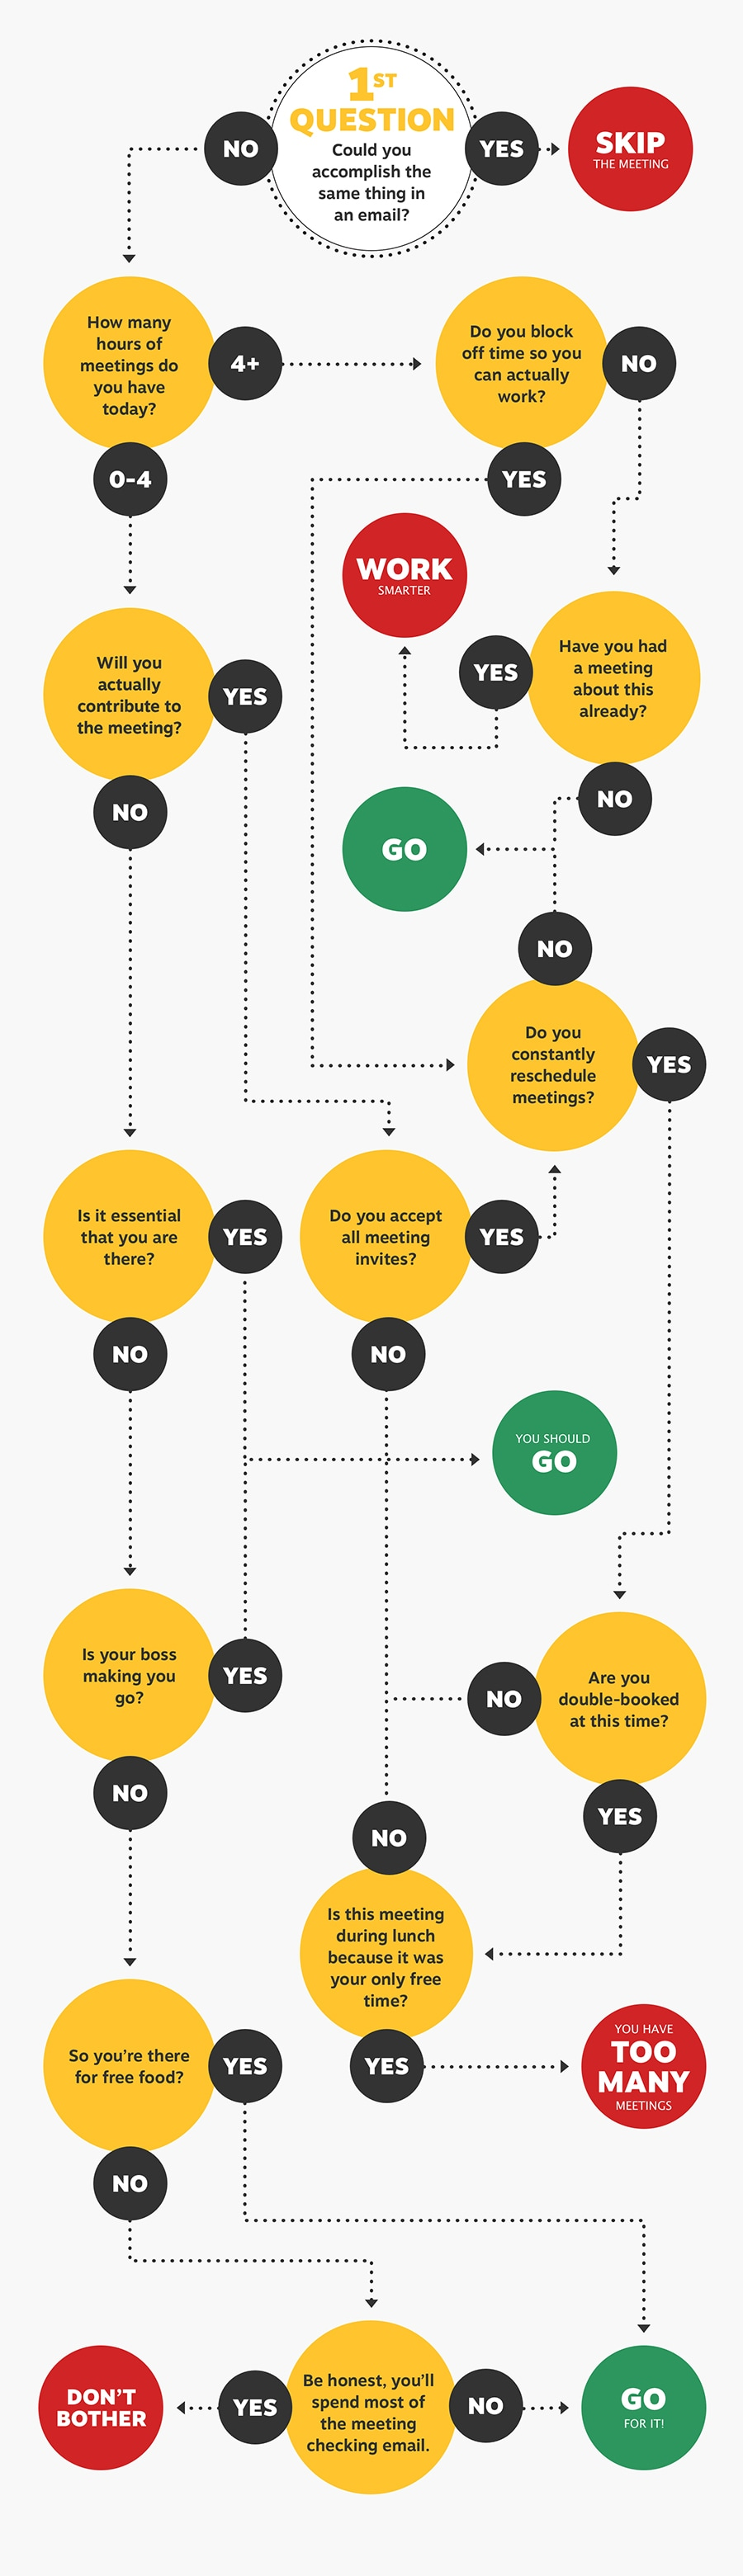 Should You Go to This Meeting?